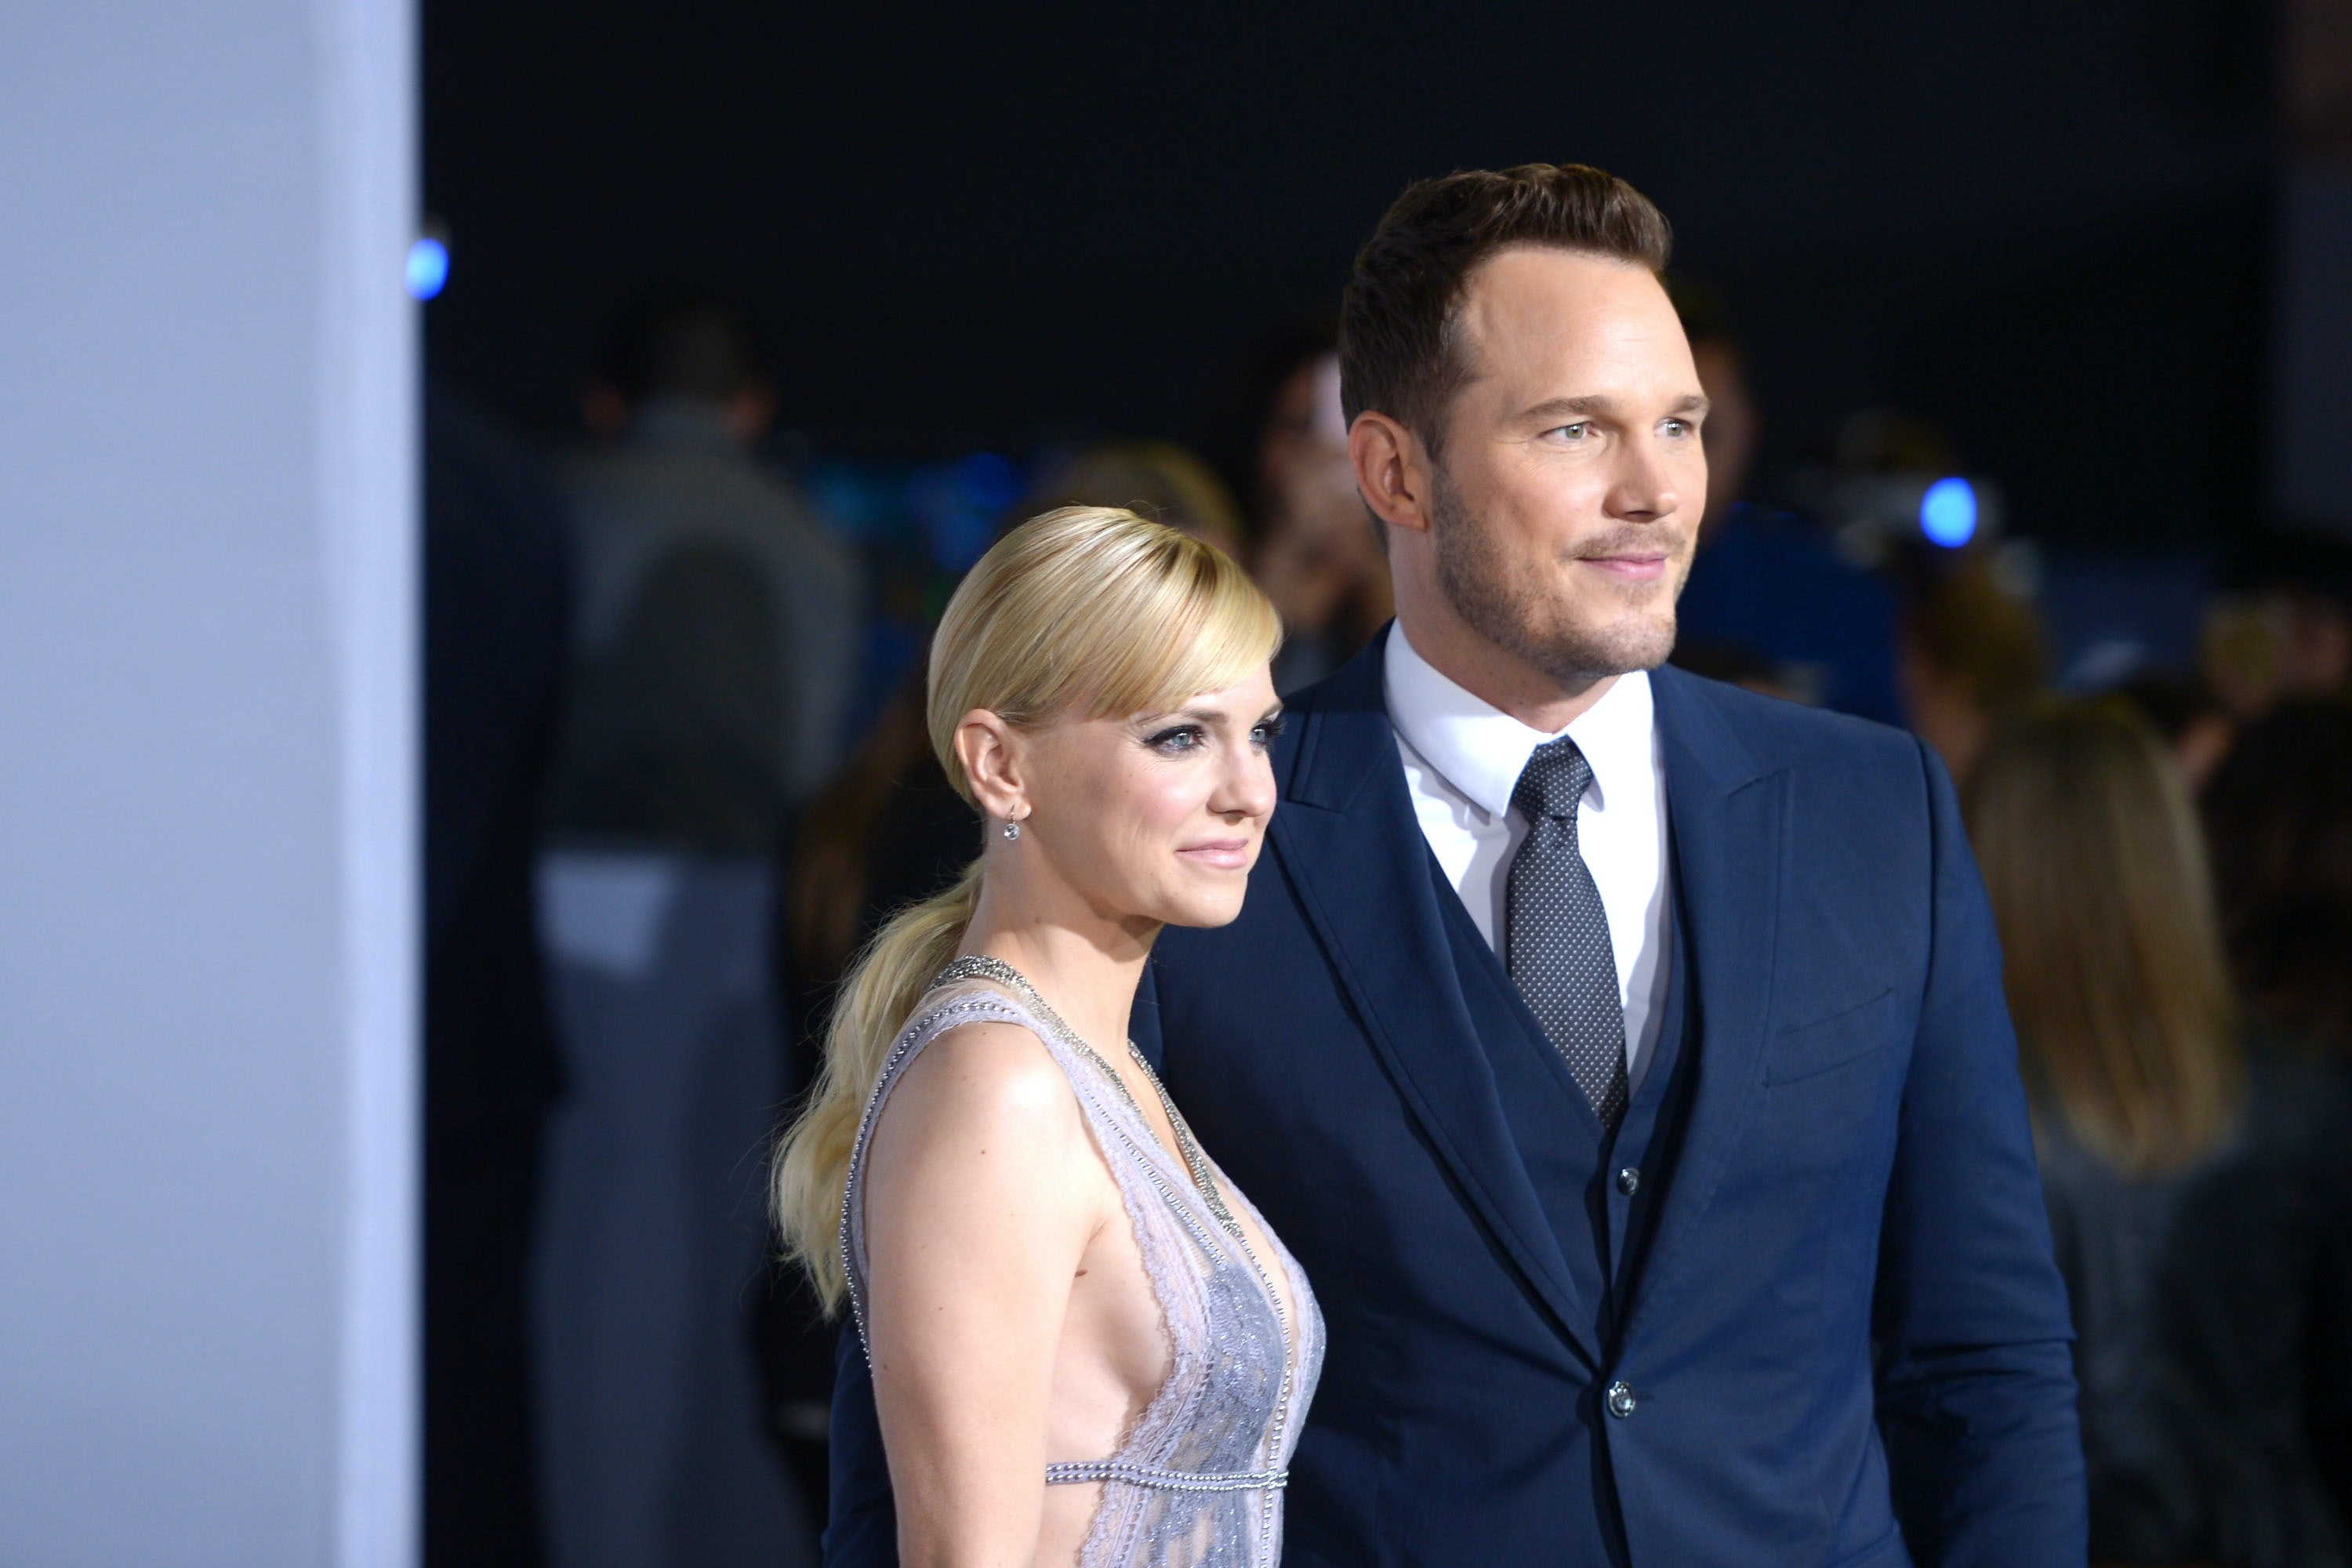 Chris Pratt files for a divorce from Anna Faris